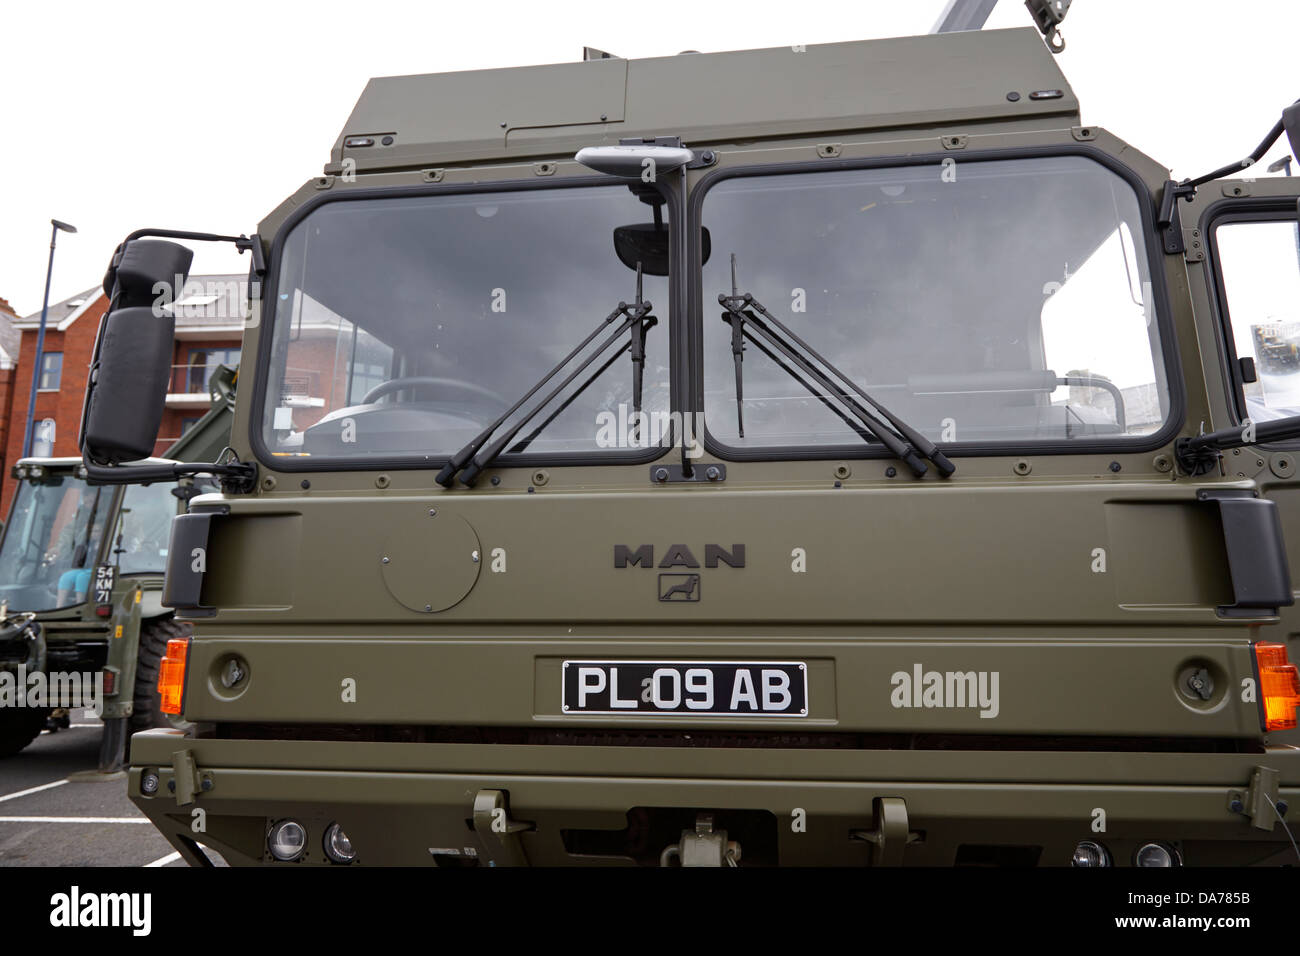 british army man support vehicle on armed forces day display county down northern ireland uk - Stock Image